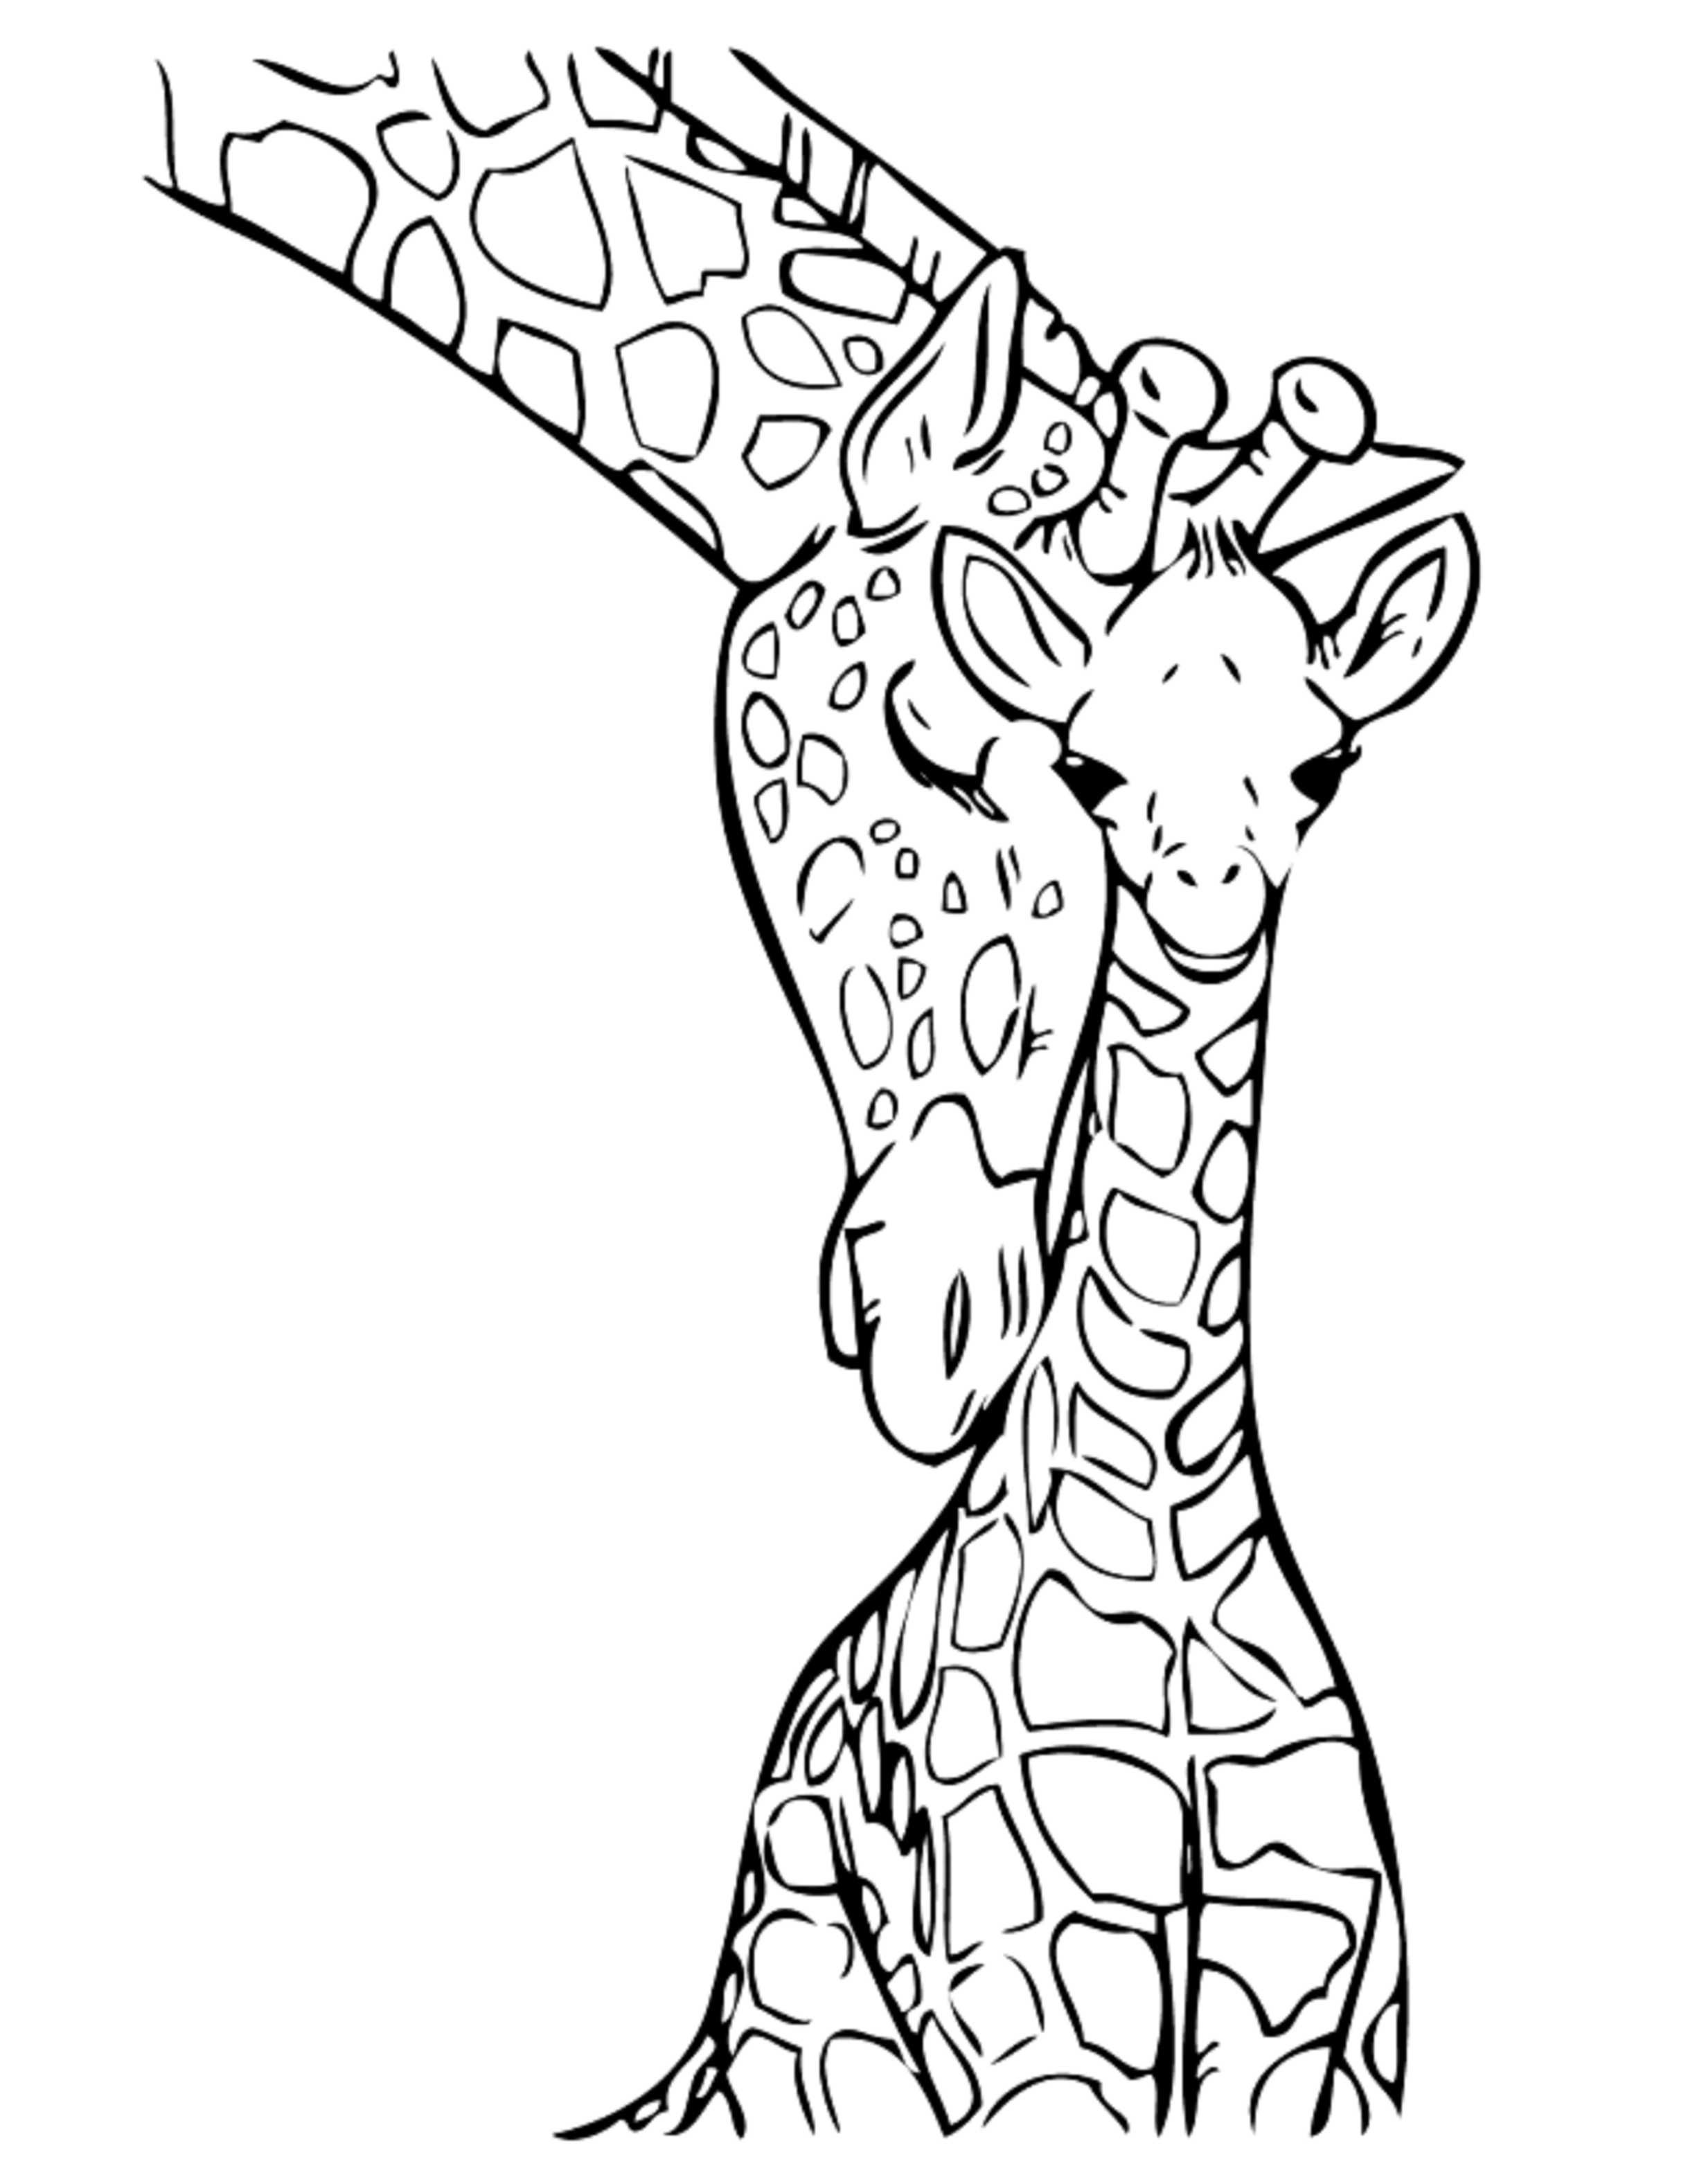 childrens colouring pictures 40 exclusive kids coloring pages ideas we need fun childrens pictures colouring